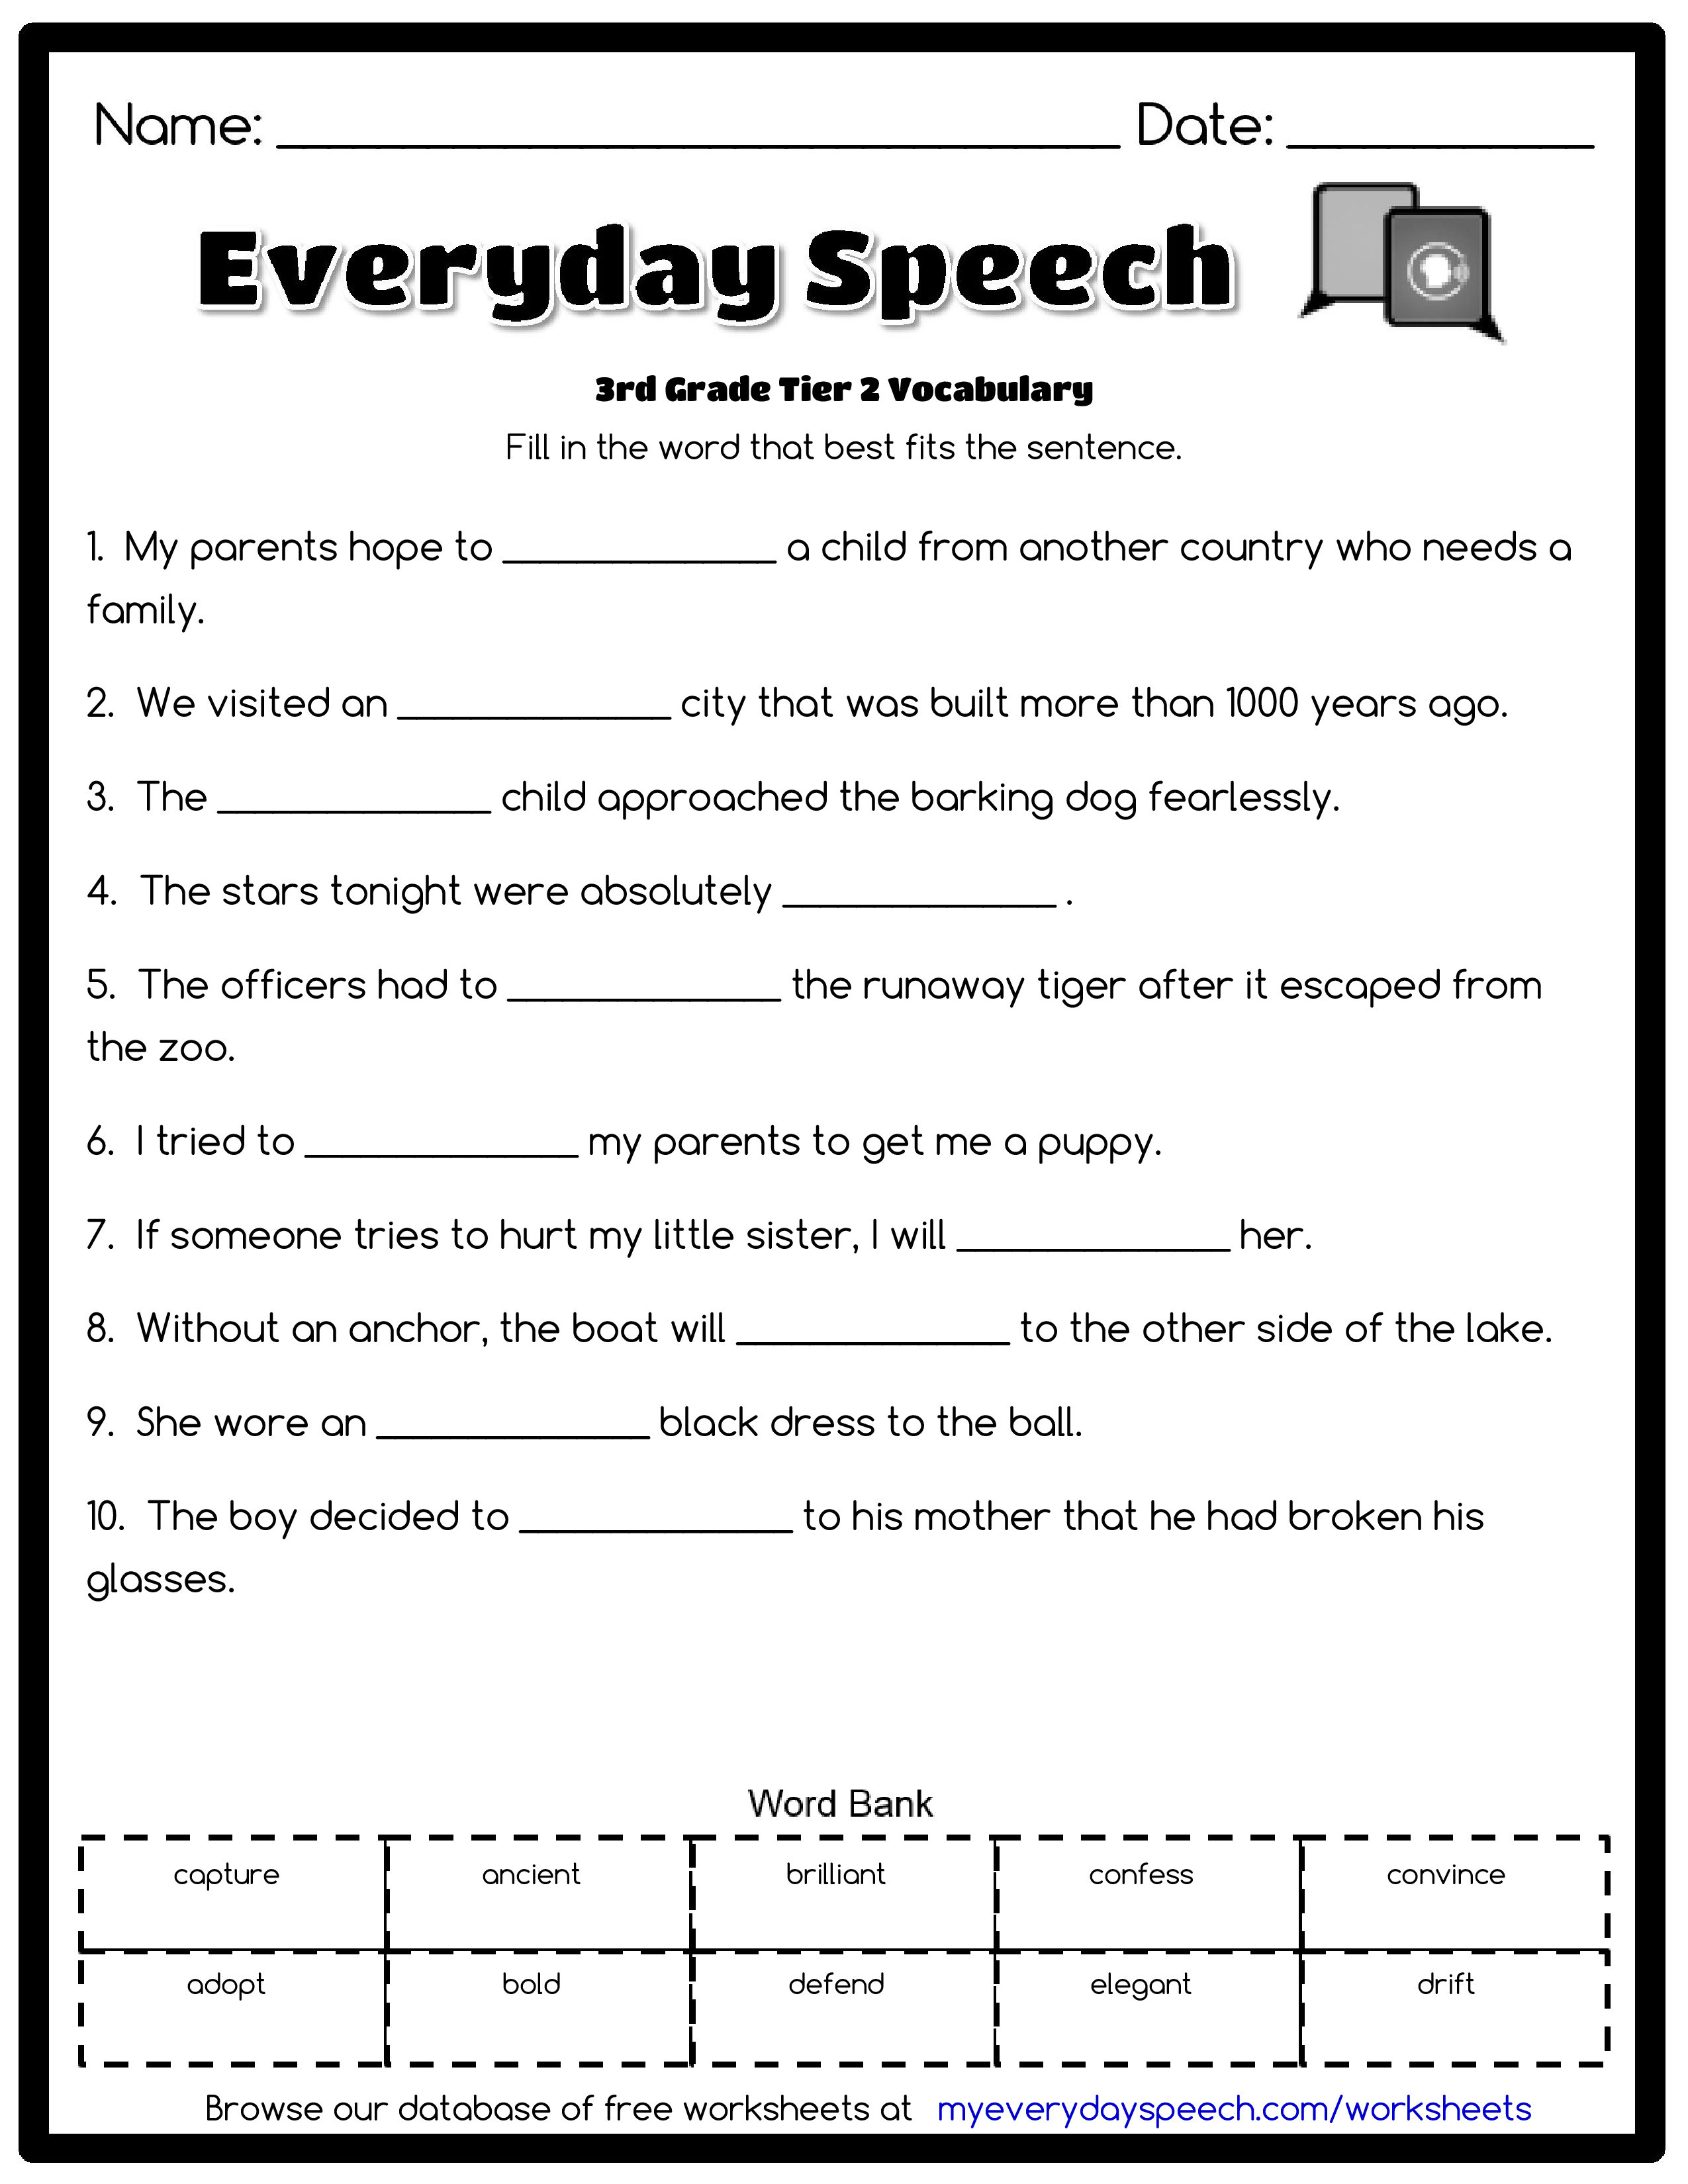 Vocabulary Worksheets for 1st Graders 3rd Grade Vocabulary Worksheets for Download 3rd Grade